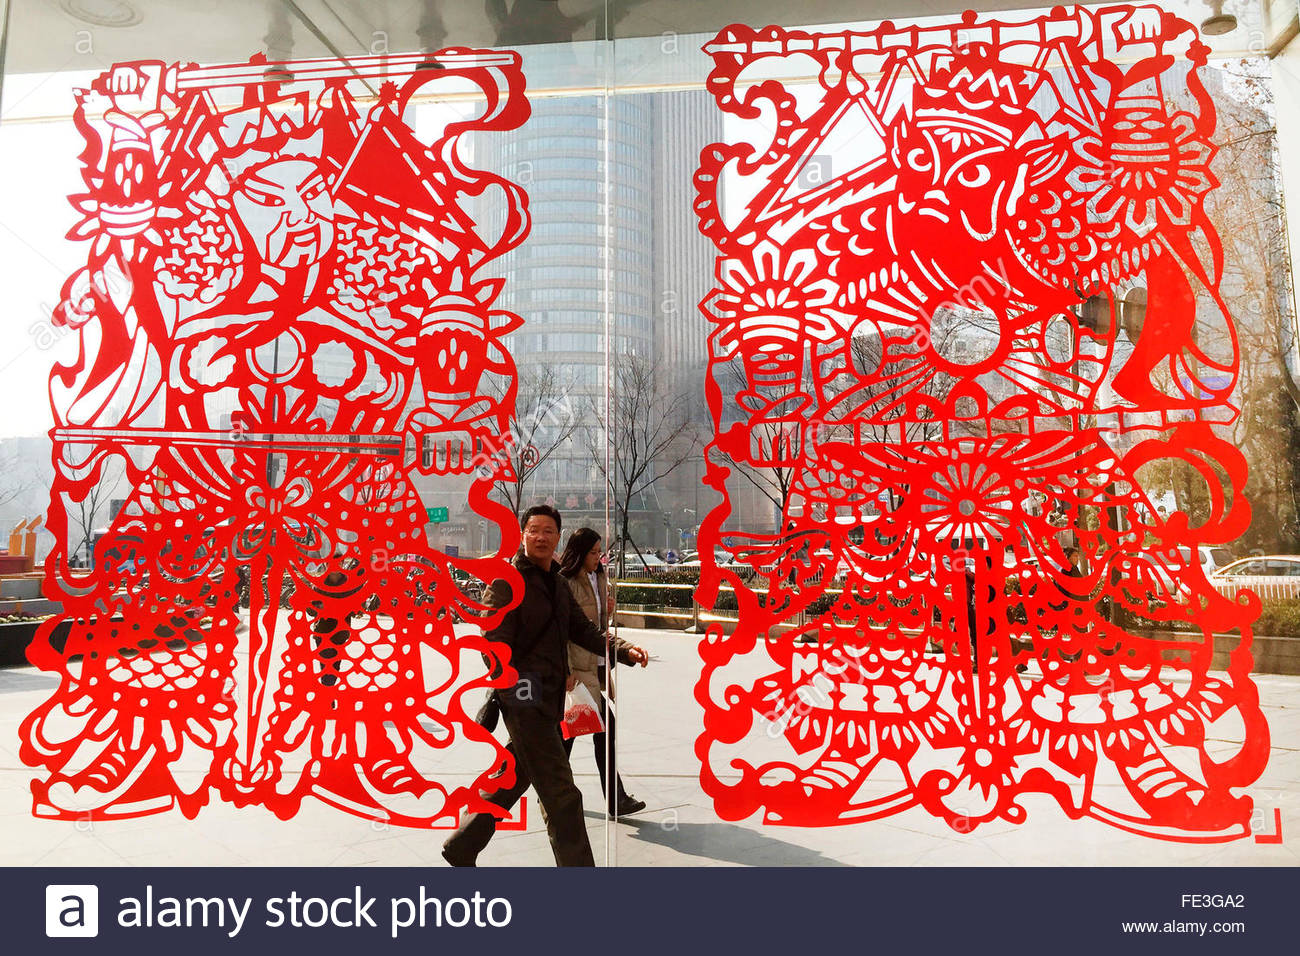 Deji Plaza paste the door-god of paper-cut for wolcoming the year of the monkey in Nanjing Jiangsu China on 3rd February 2016 & Deji Plaza paste the door-god of paper-cut for wolcoming the year of ...